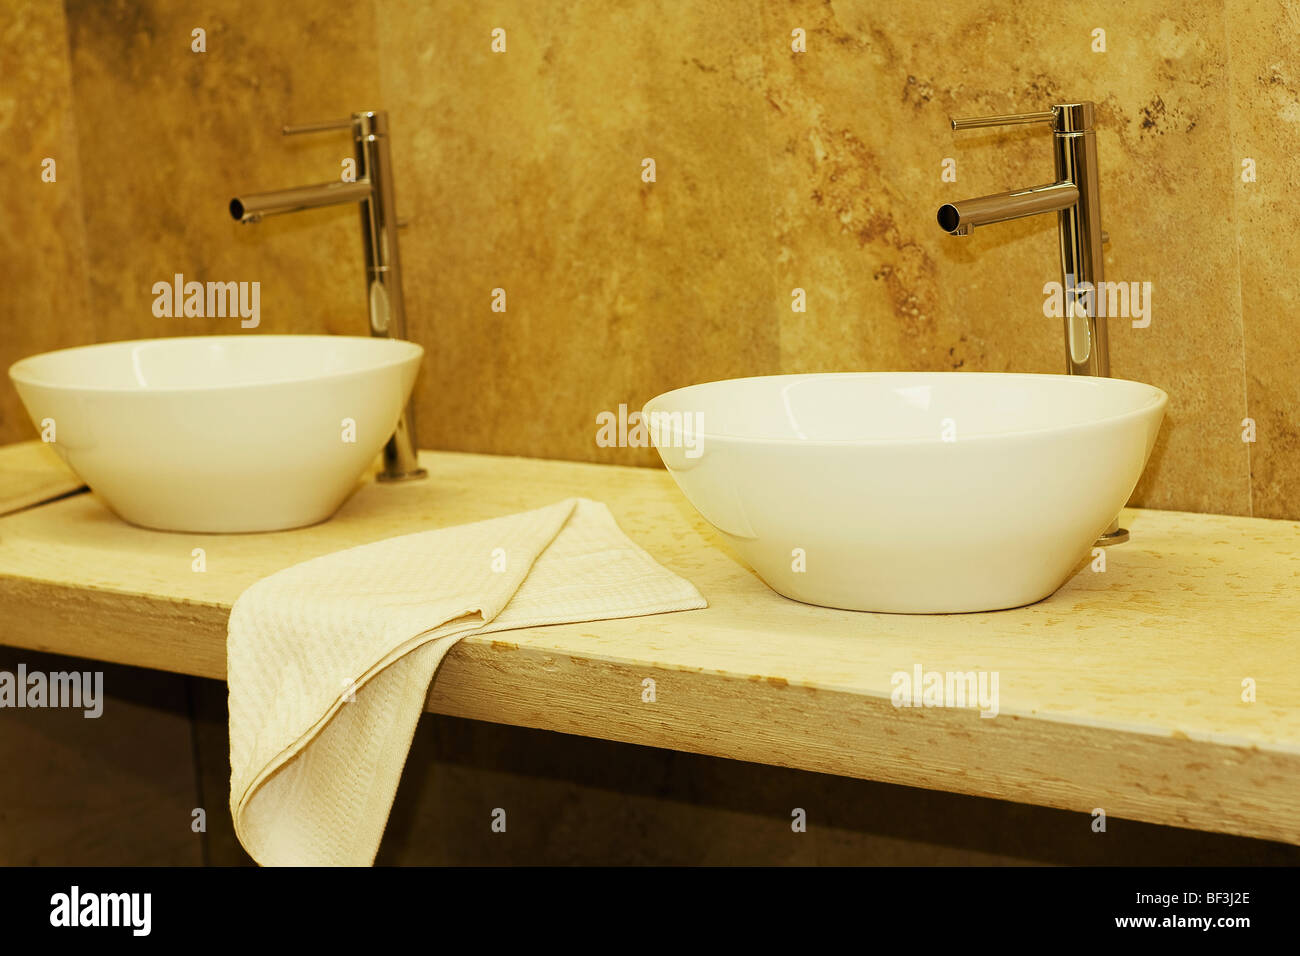 Wash bowls in the bathroom - Stock Image